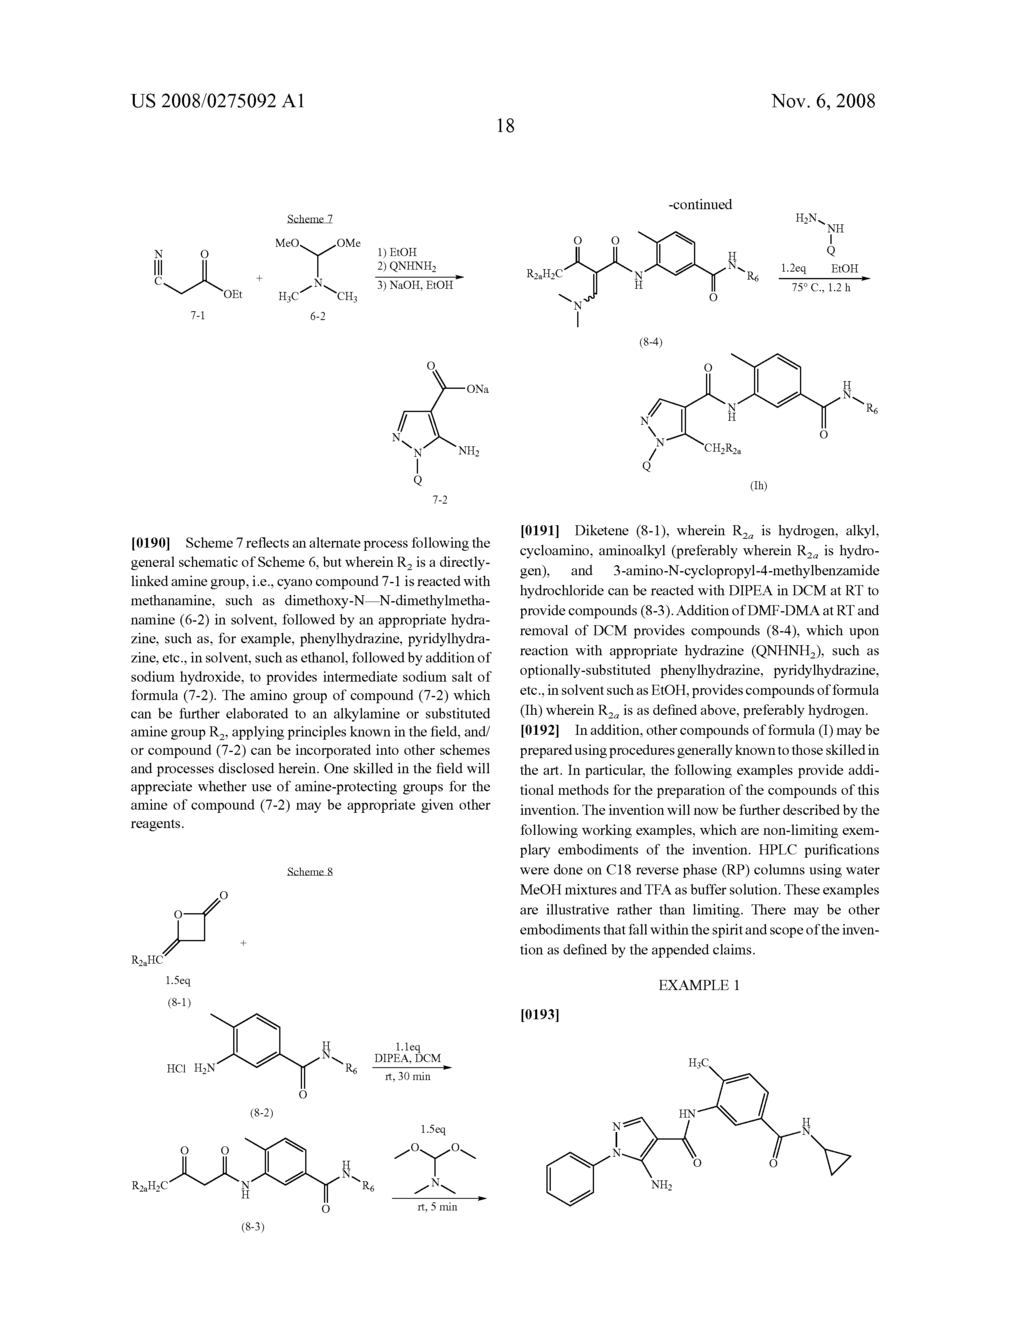 ARYL-SUBSTITUTED PYRAZOLE-AMIDE COMPOUNDS USEFUL AS KINASE INHIBITORS - diagram, schematic, and image 19